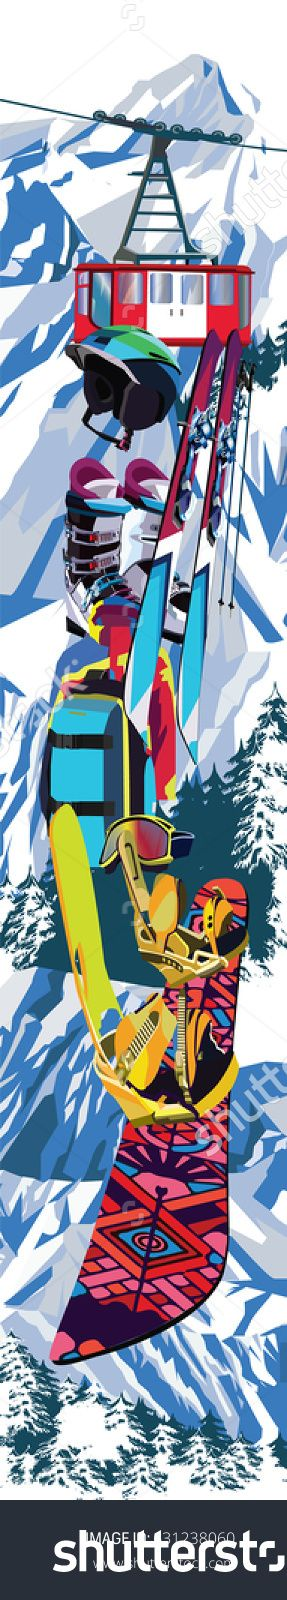 Skis, snowboard, lift, glasses, backpack, boots, helmet and jacket against the background of mountains and coniferous trees. Design for a ski resort